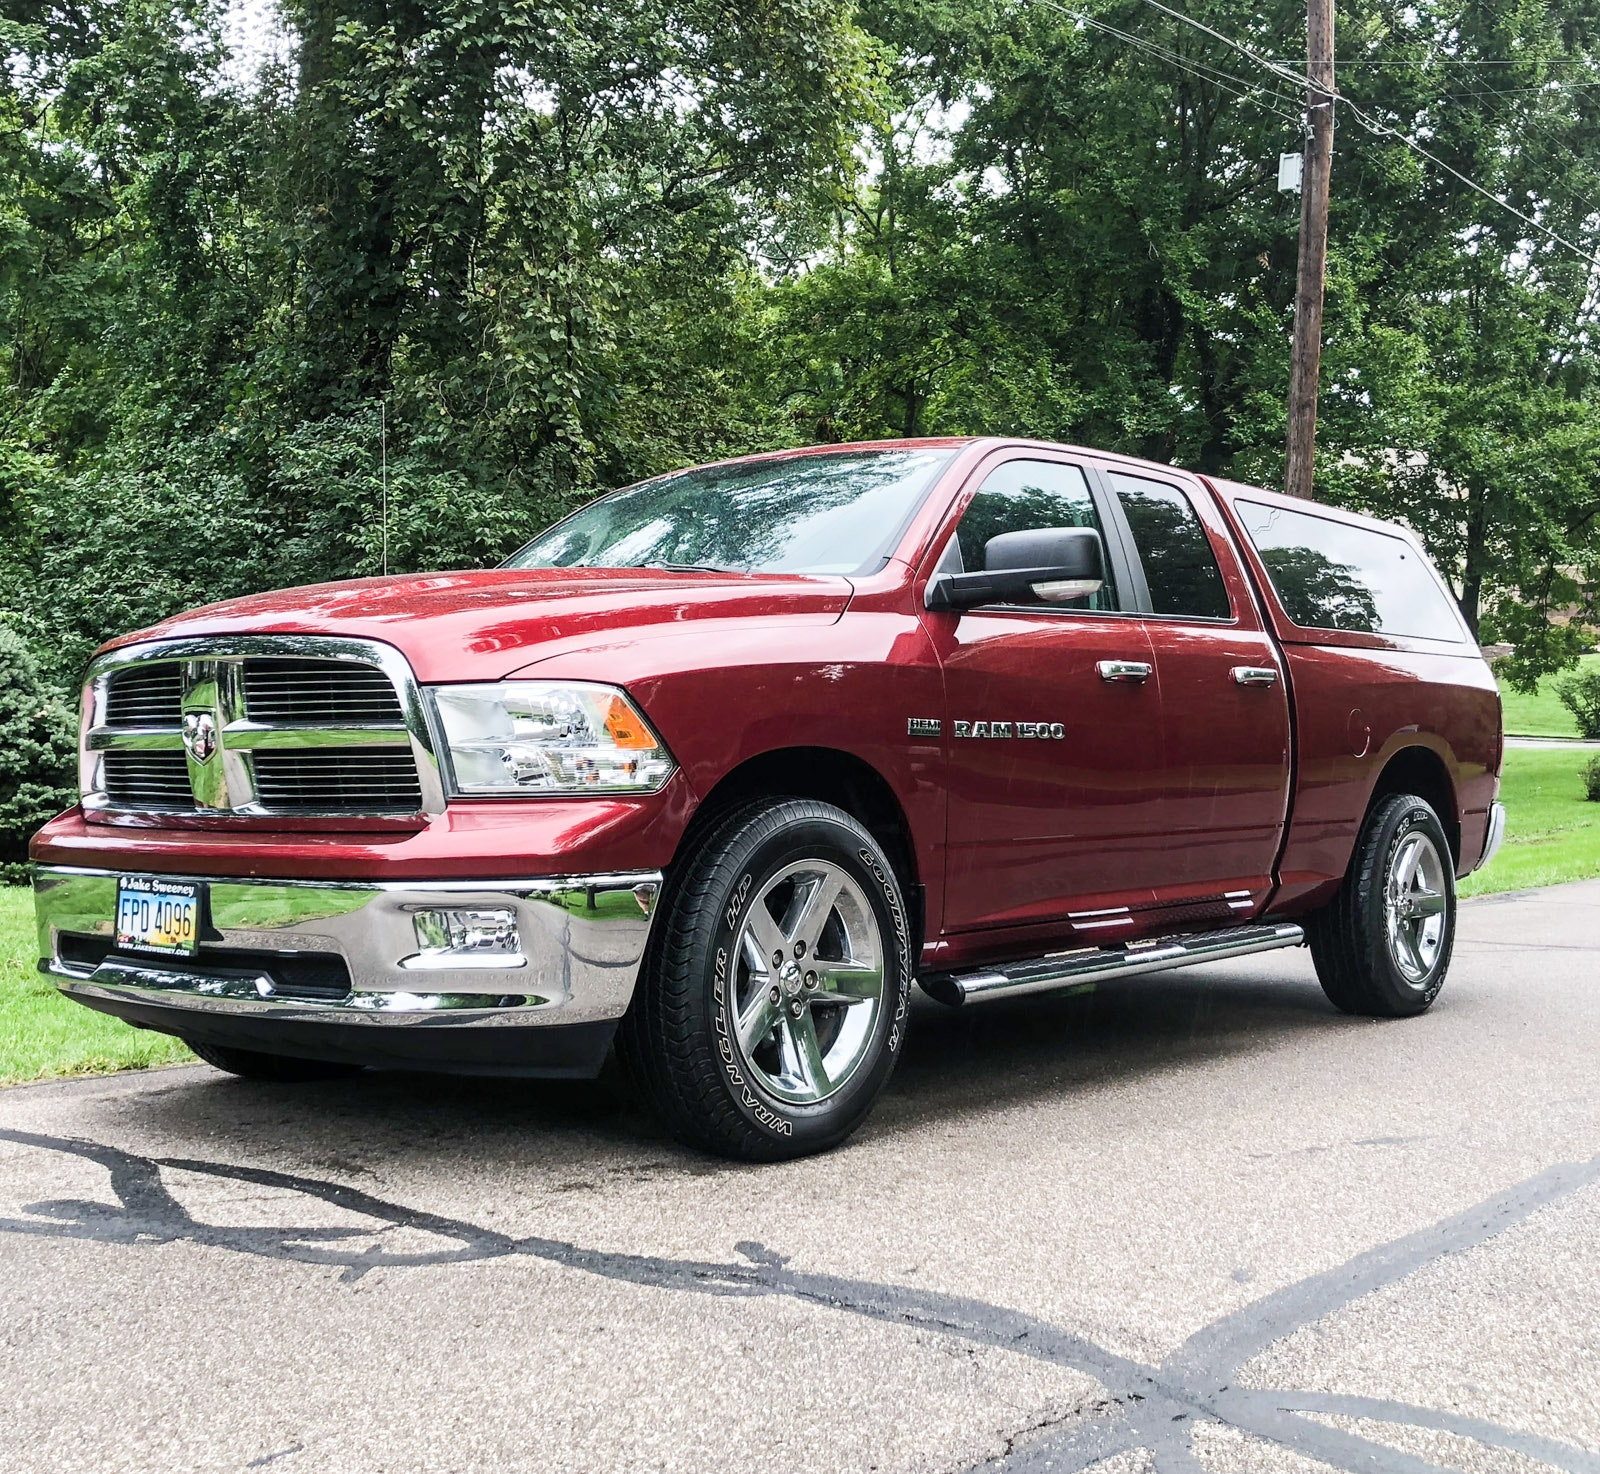 2012 Dodge Ram 1500 Big Horn Quad Cab 4 x 4 Pickup Truck with Custom Leer Cap